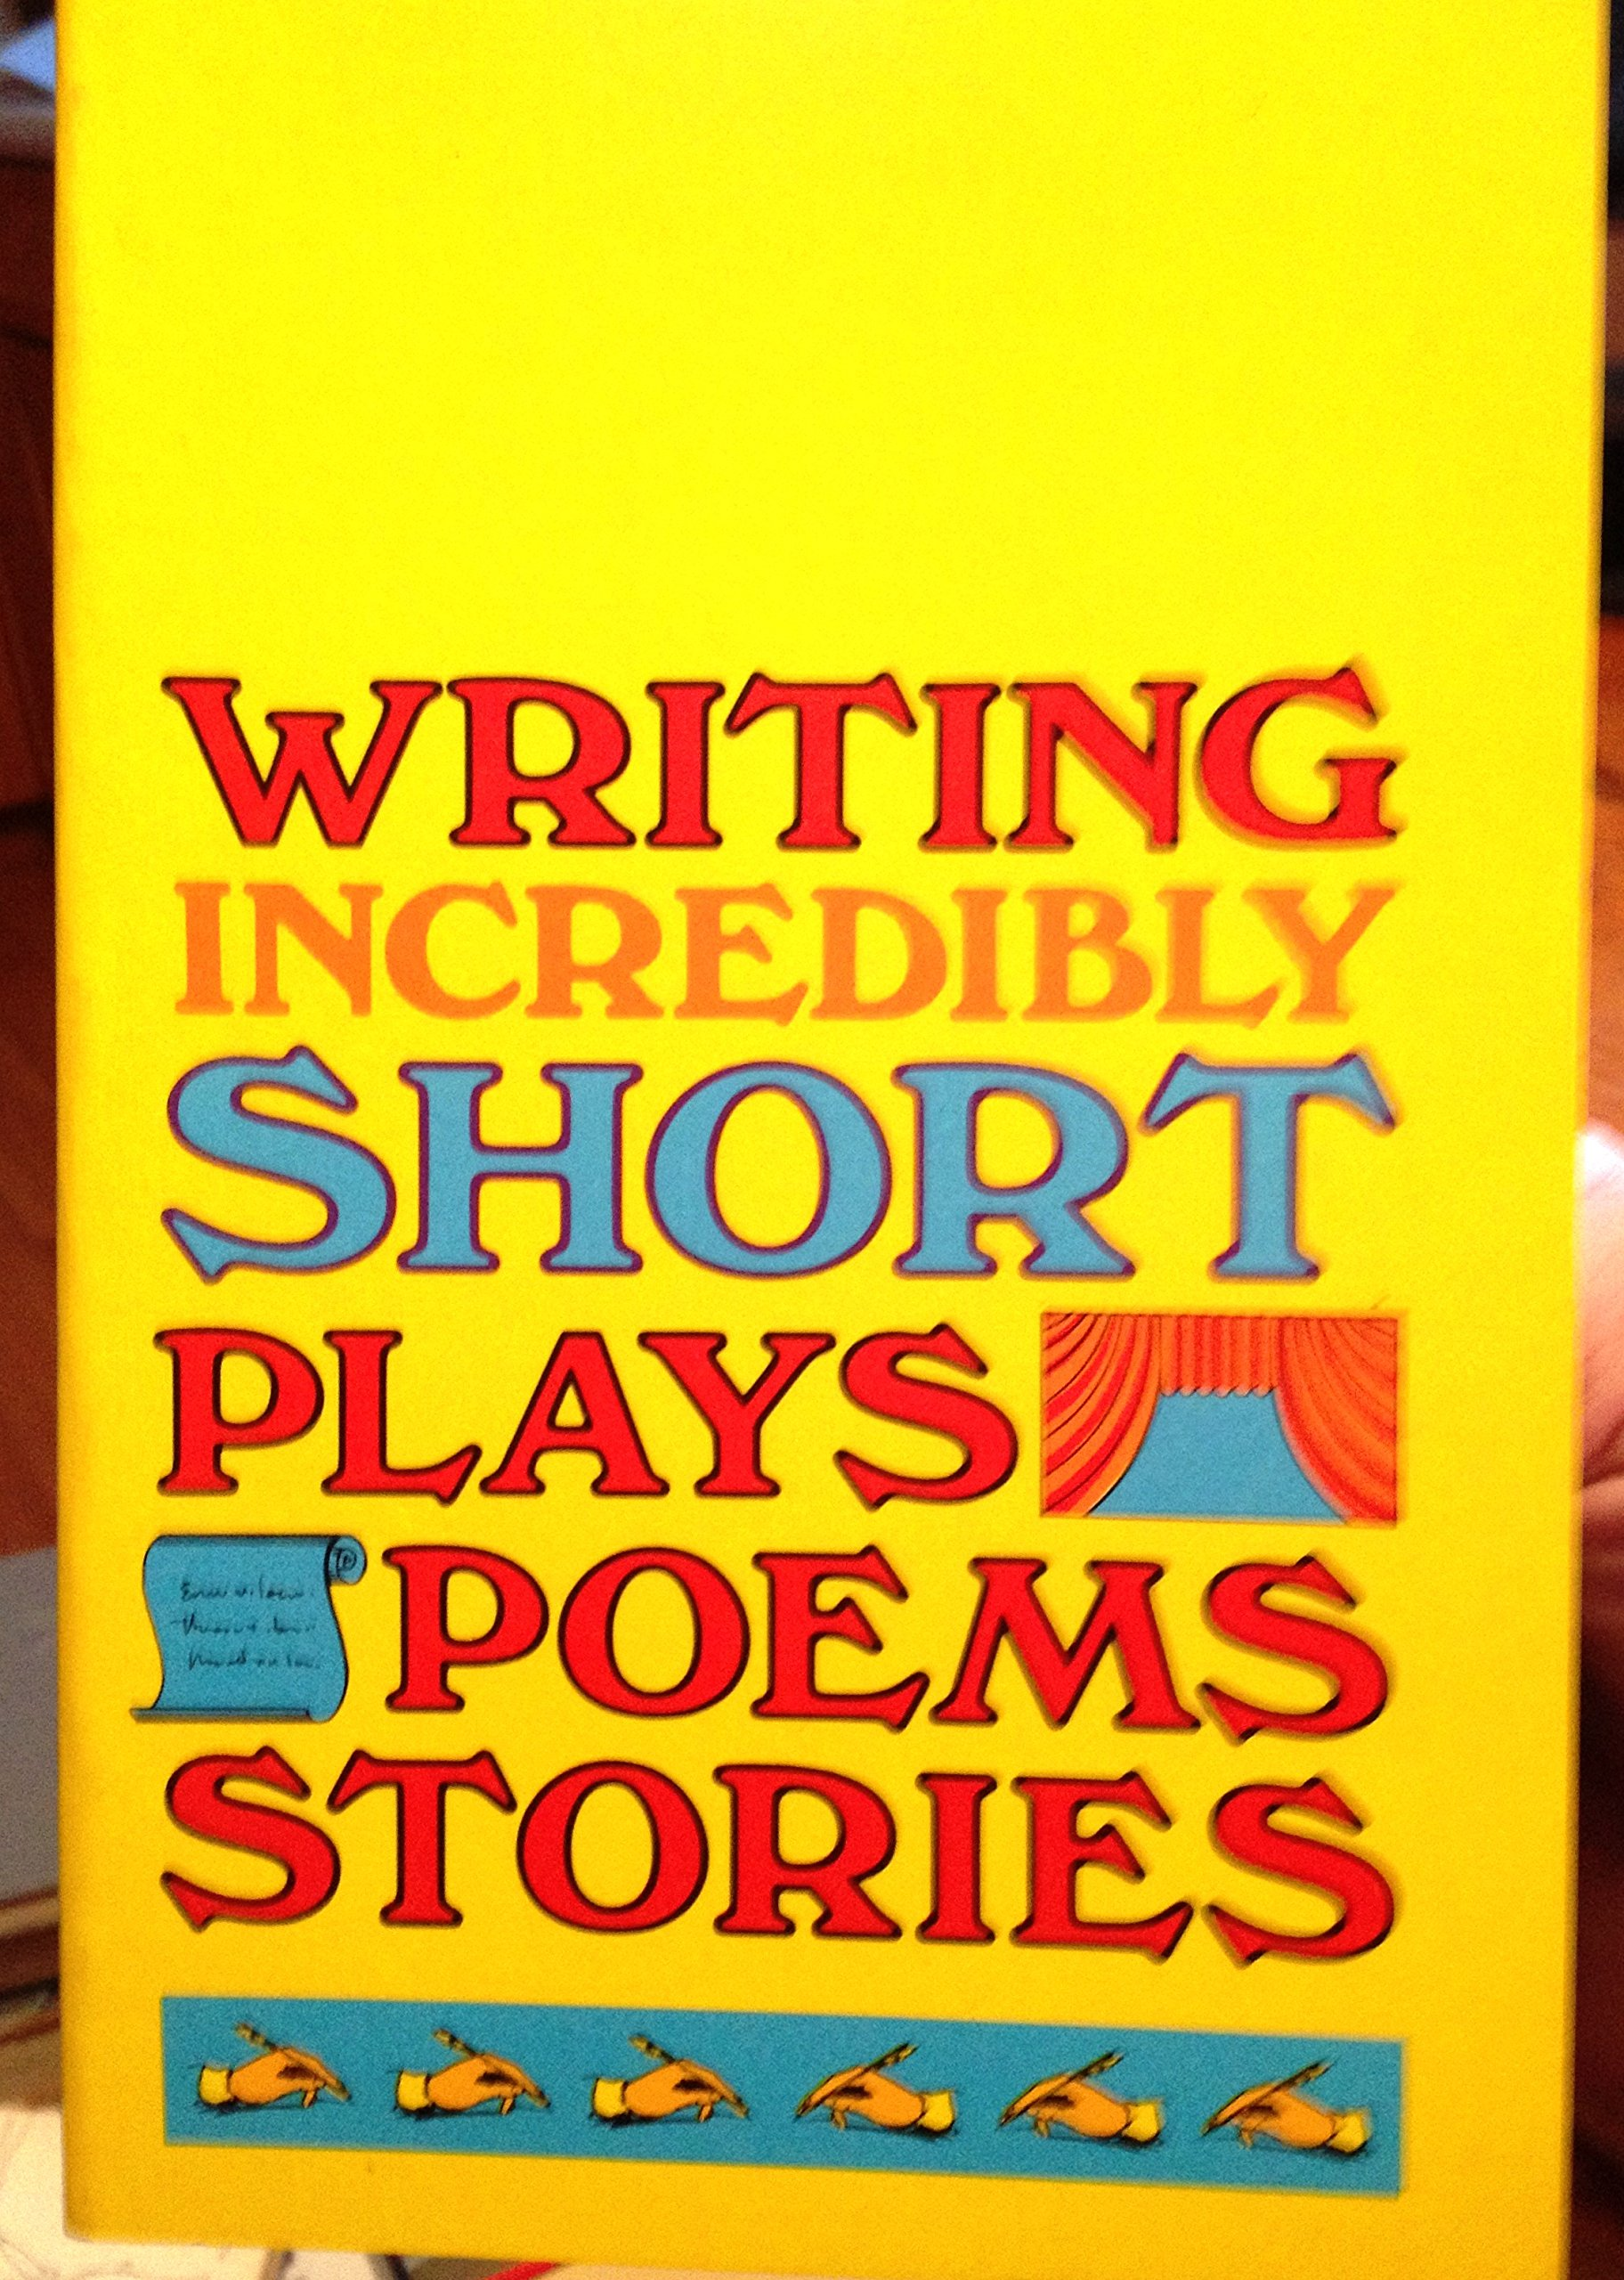 Writing Incredibly Short Plays, Poems, Stories: James H. Norton, Francis  Gretton: 9780153123504: Amazon.com: Books